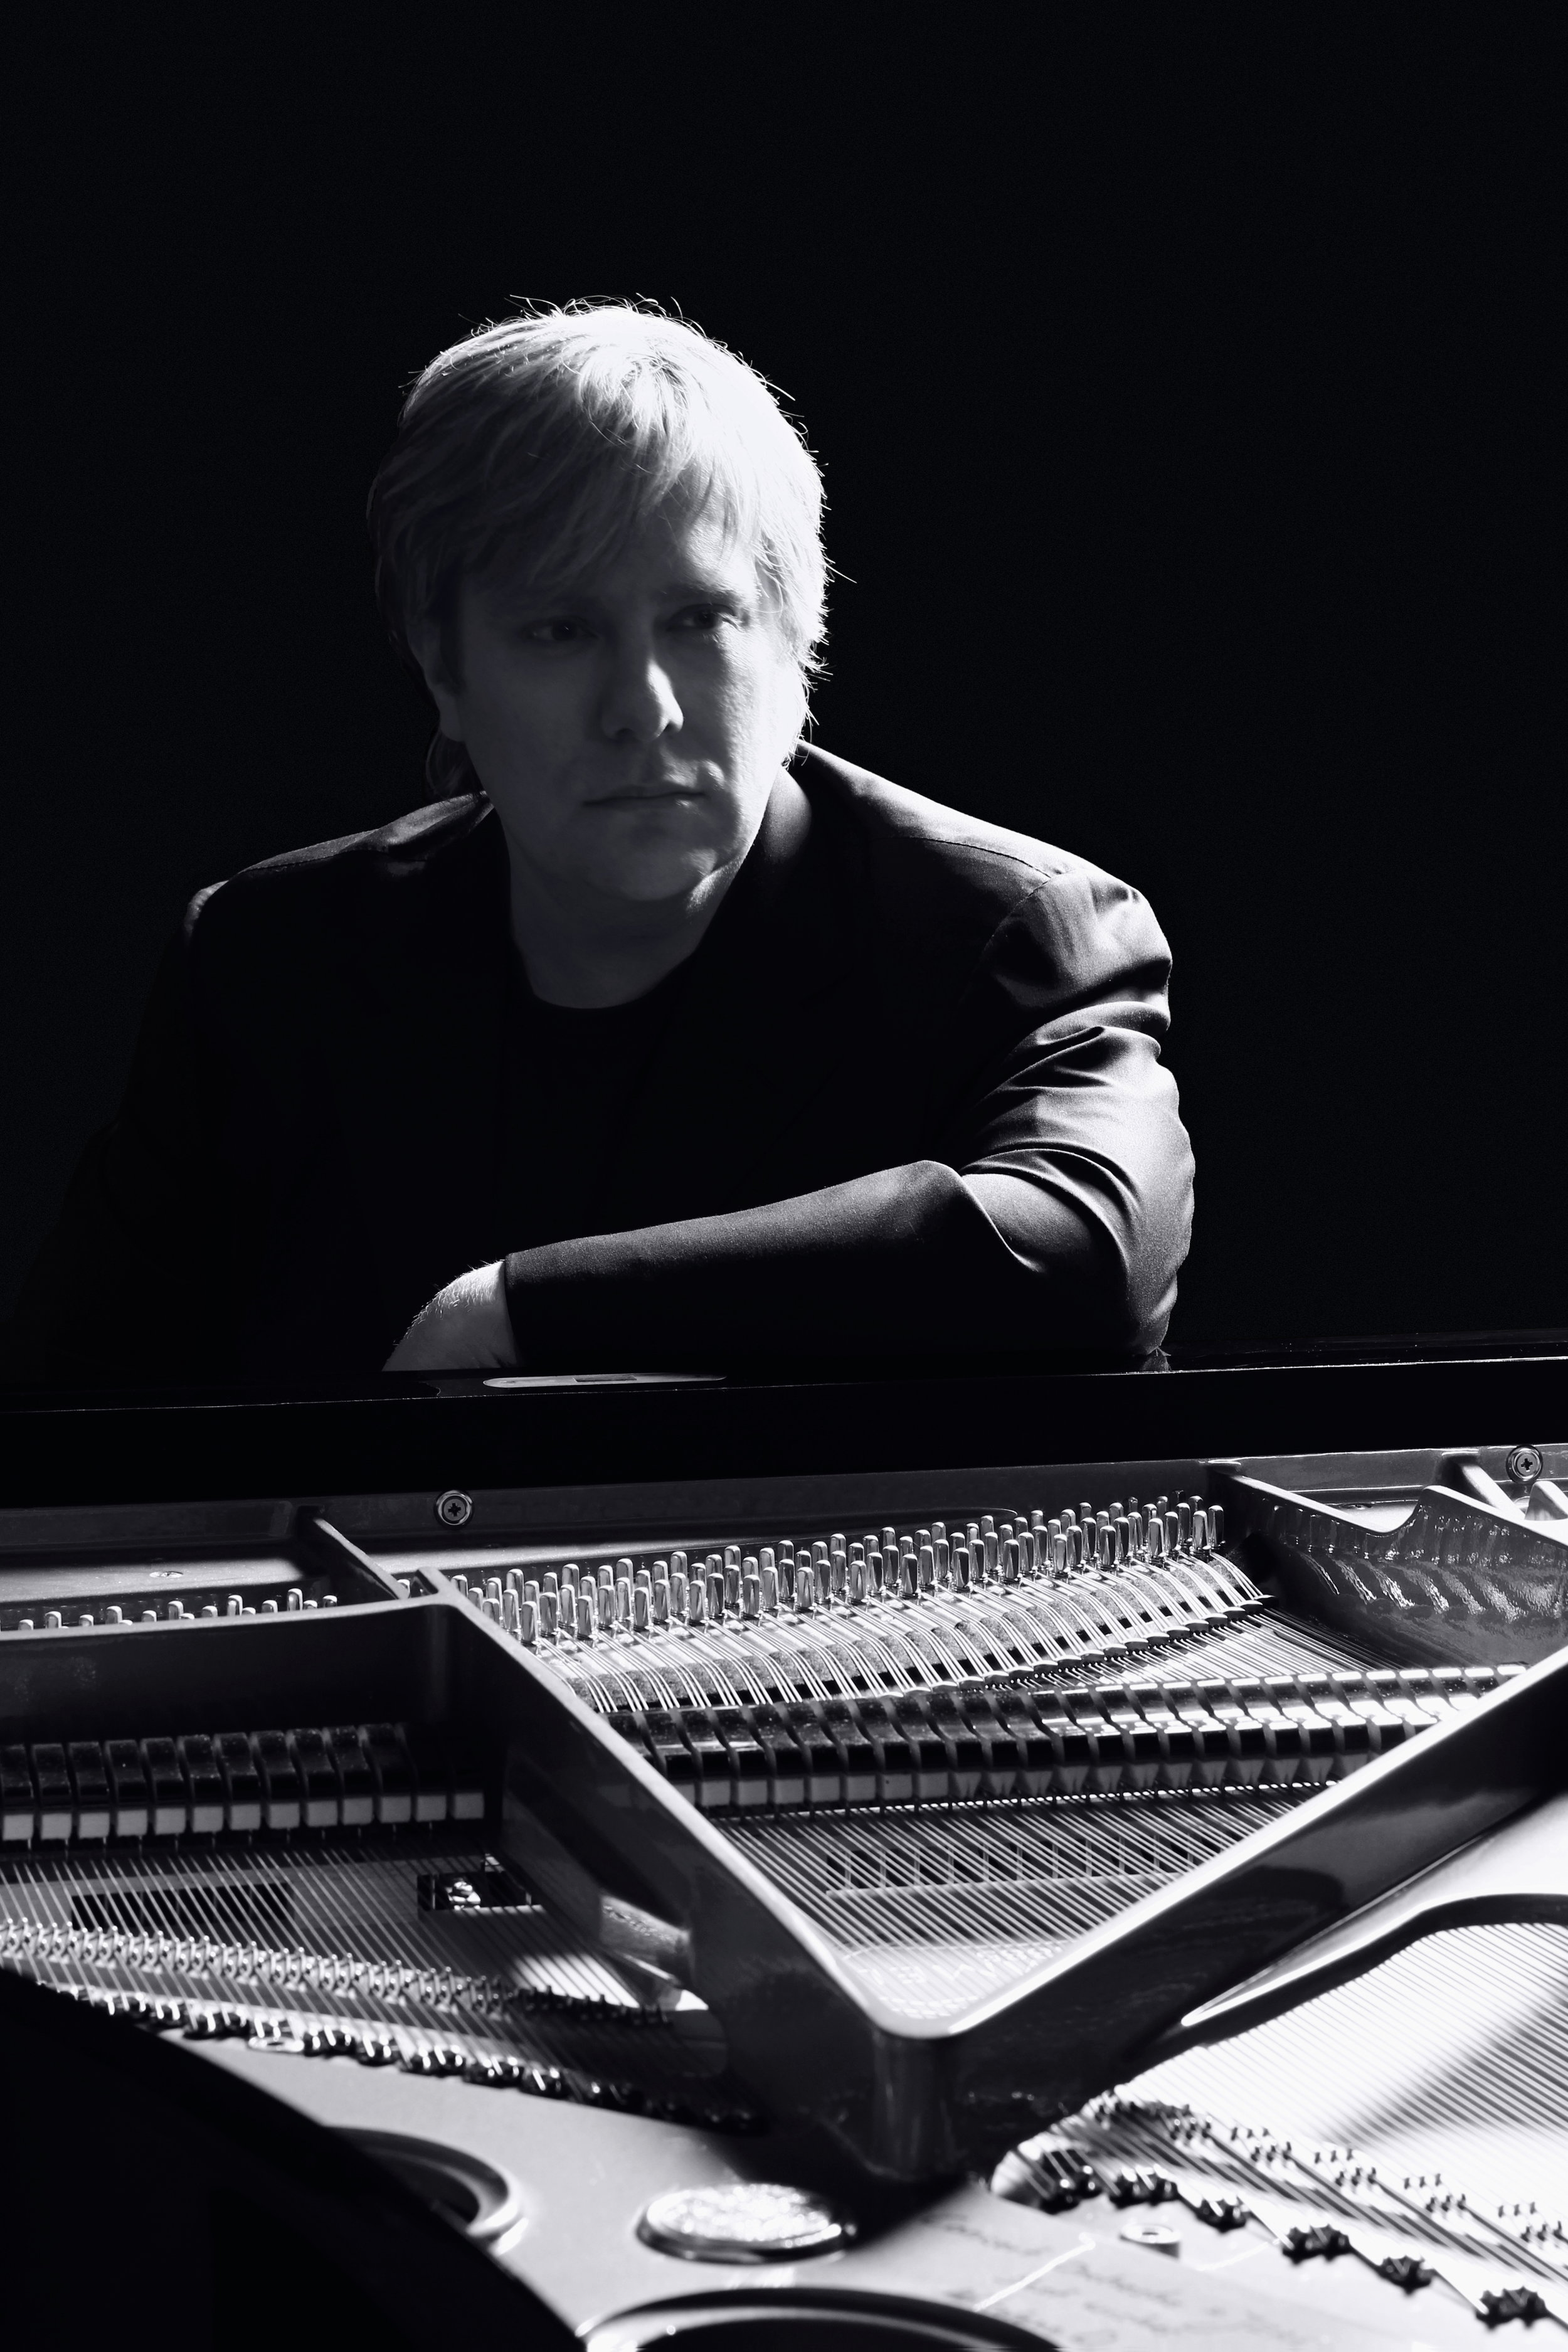 Jeremy Soule & Julian Soule - Composers / songwriters / producers